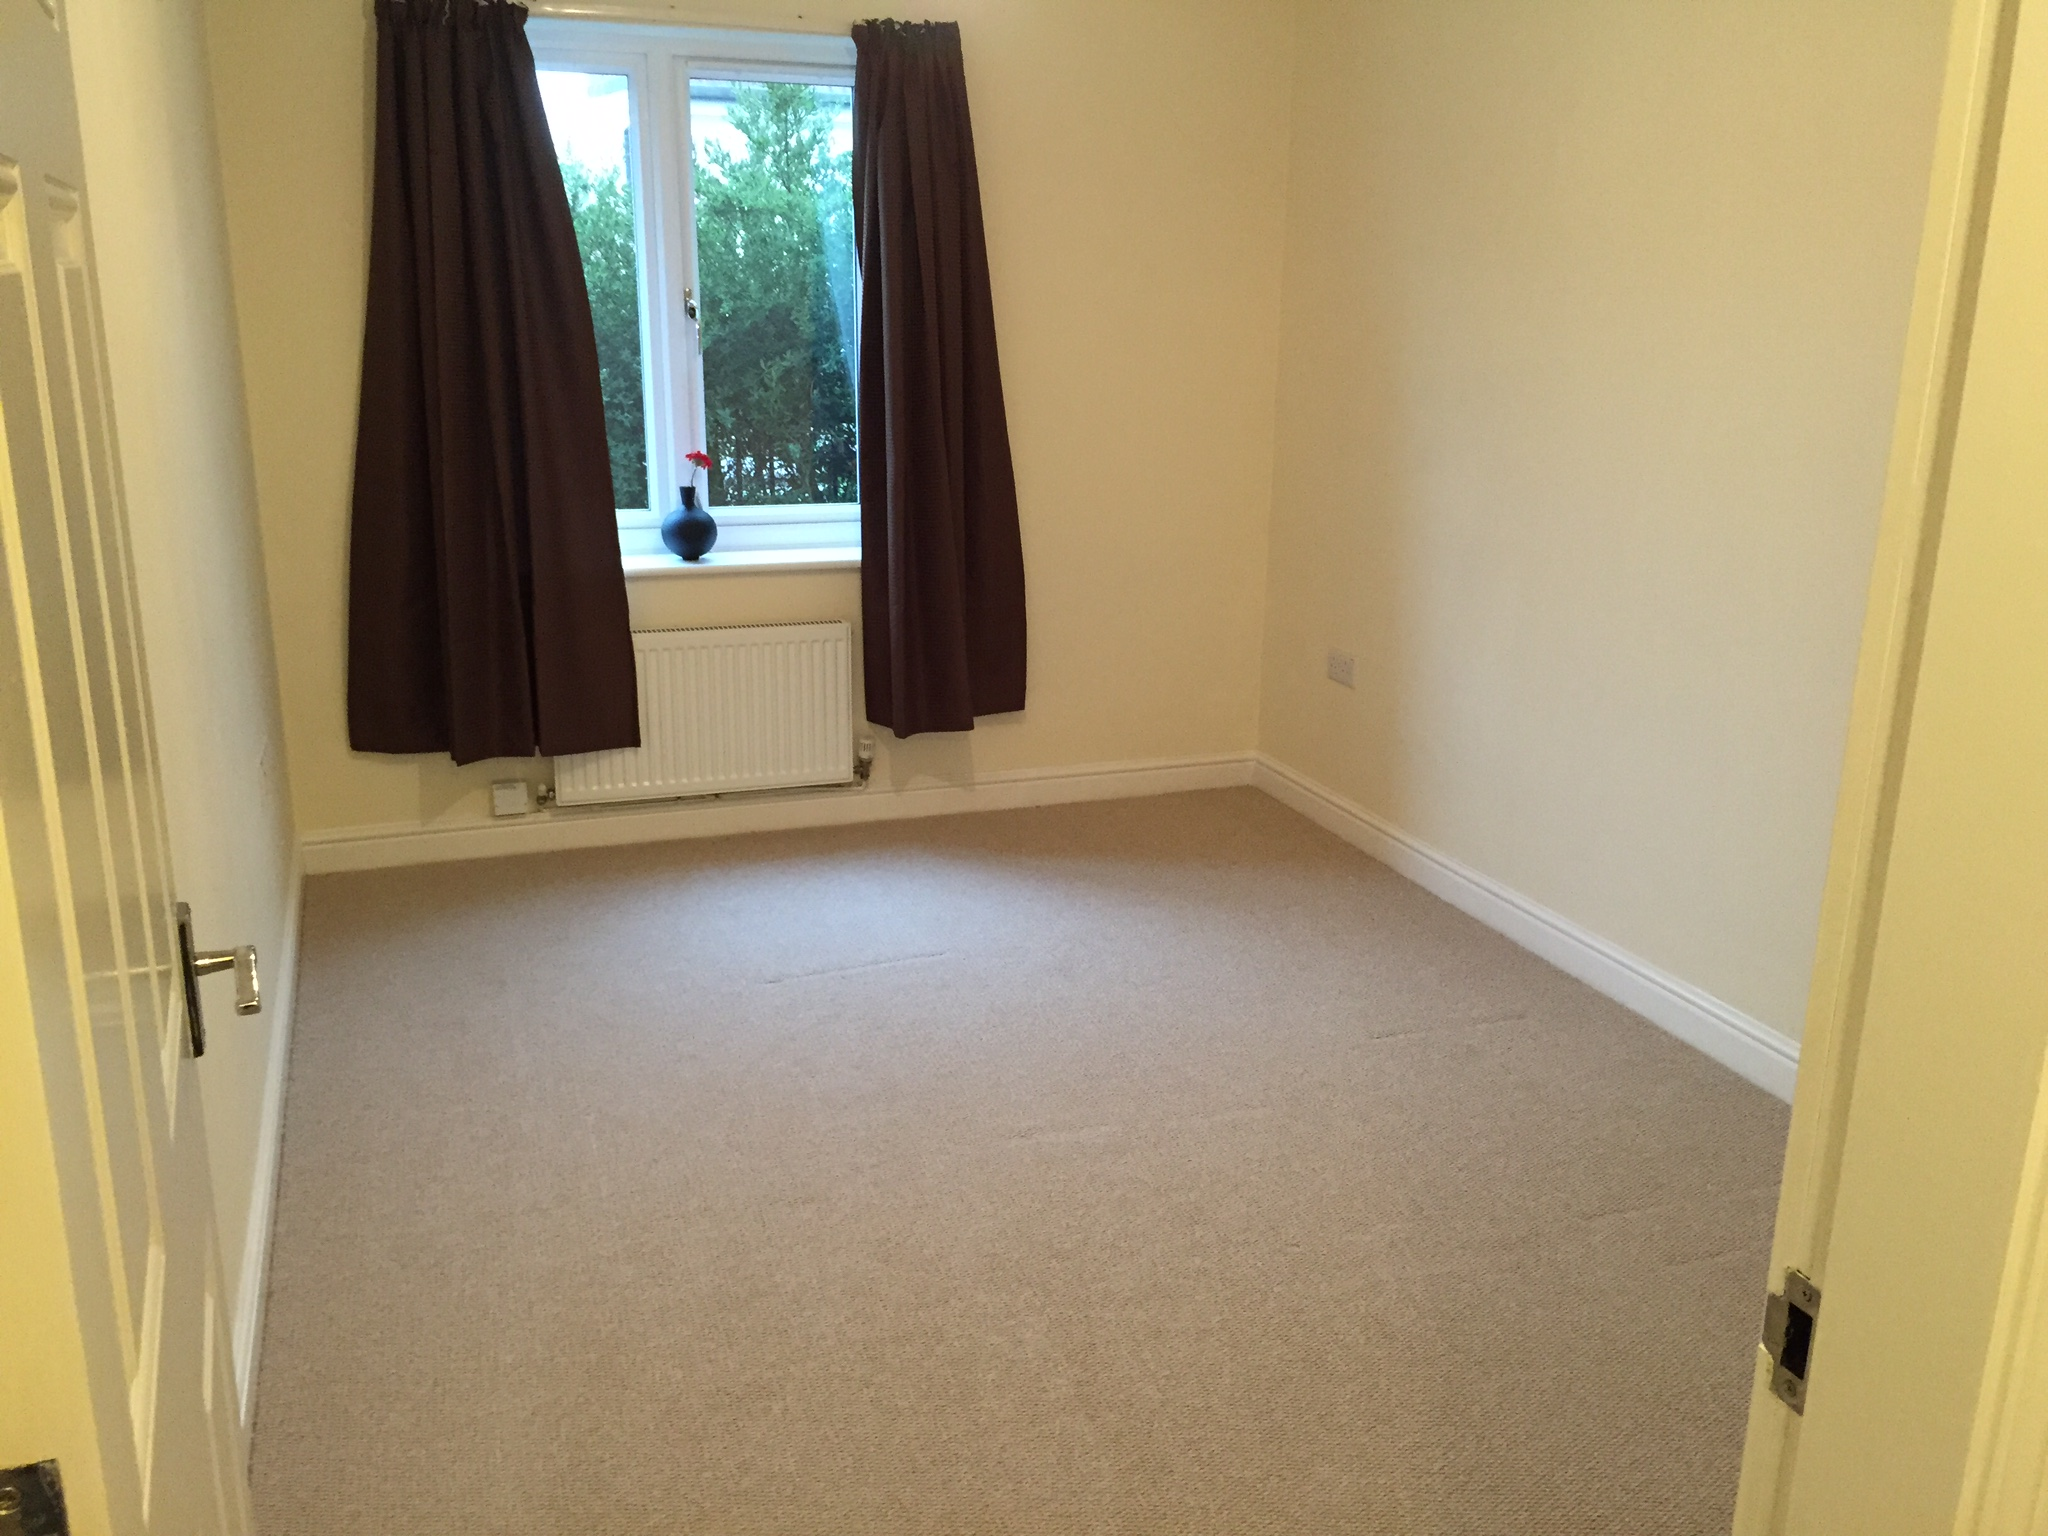 2 bedroom house for rent private landlord in slough. 2 bedroom unfurnished ground flat to rent on elliman avenue, slough, berkshire, sl2 house for private landlord in slough u